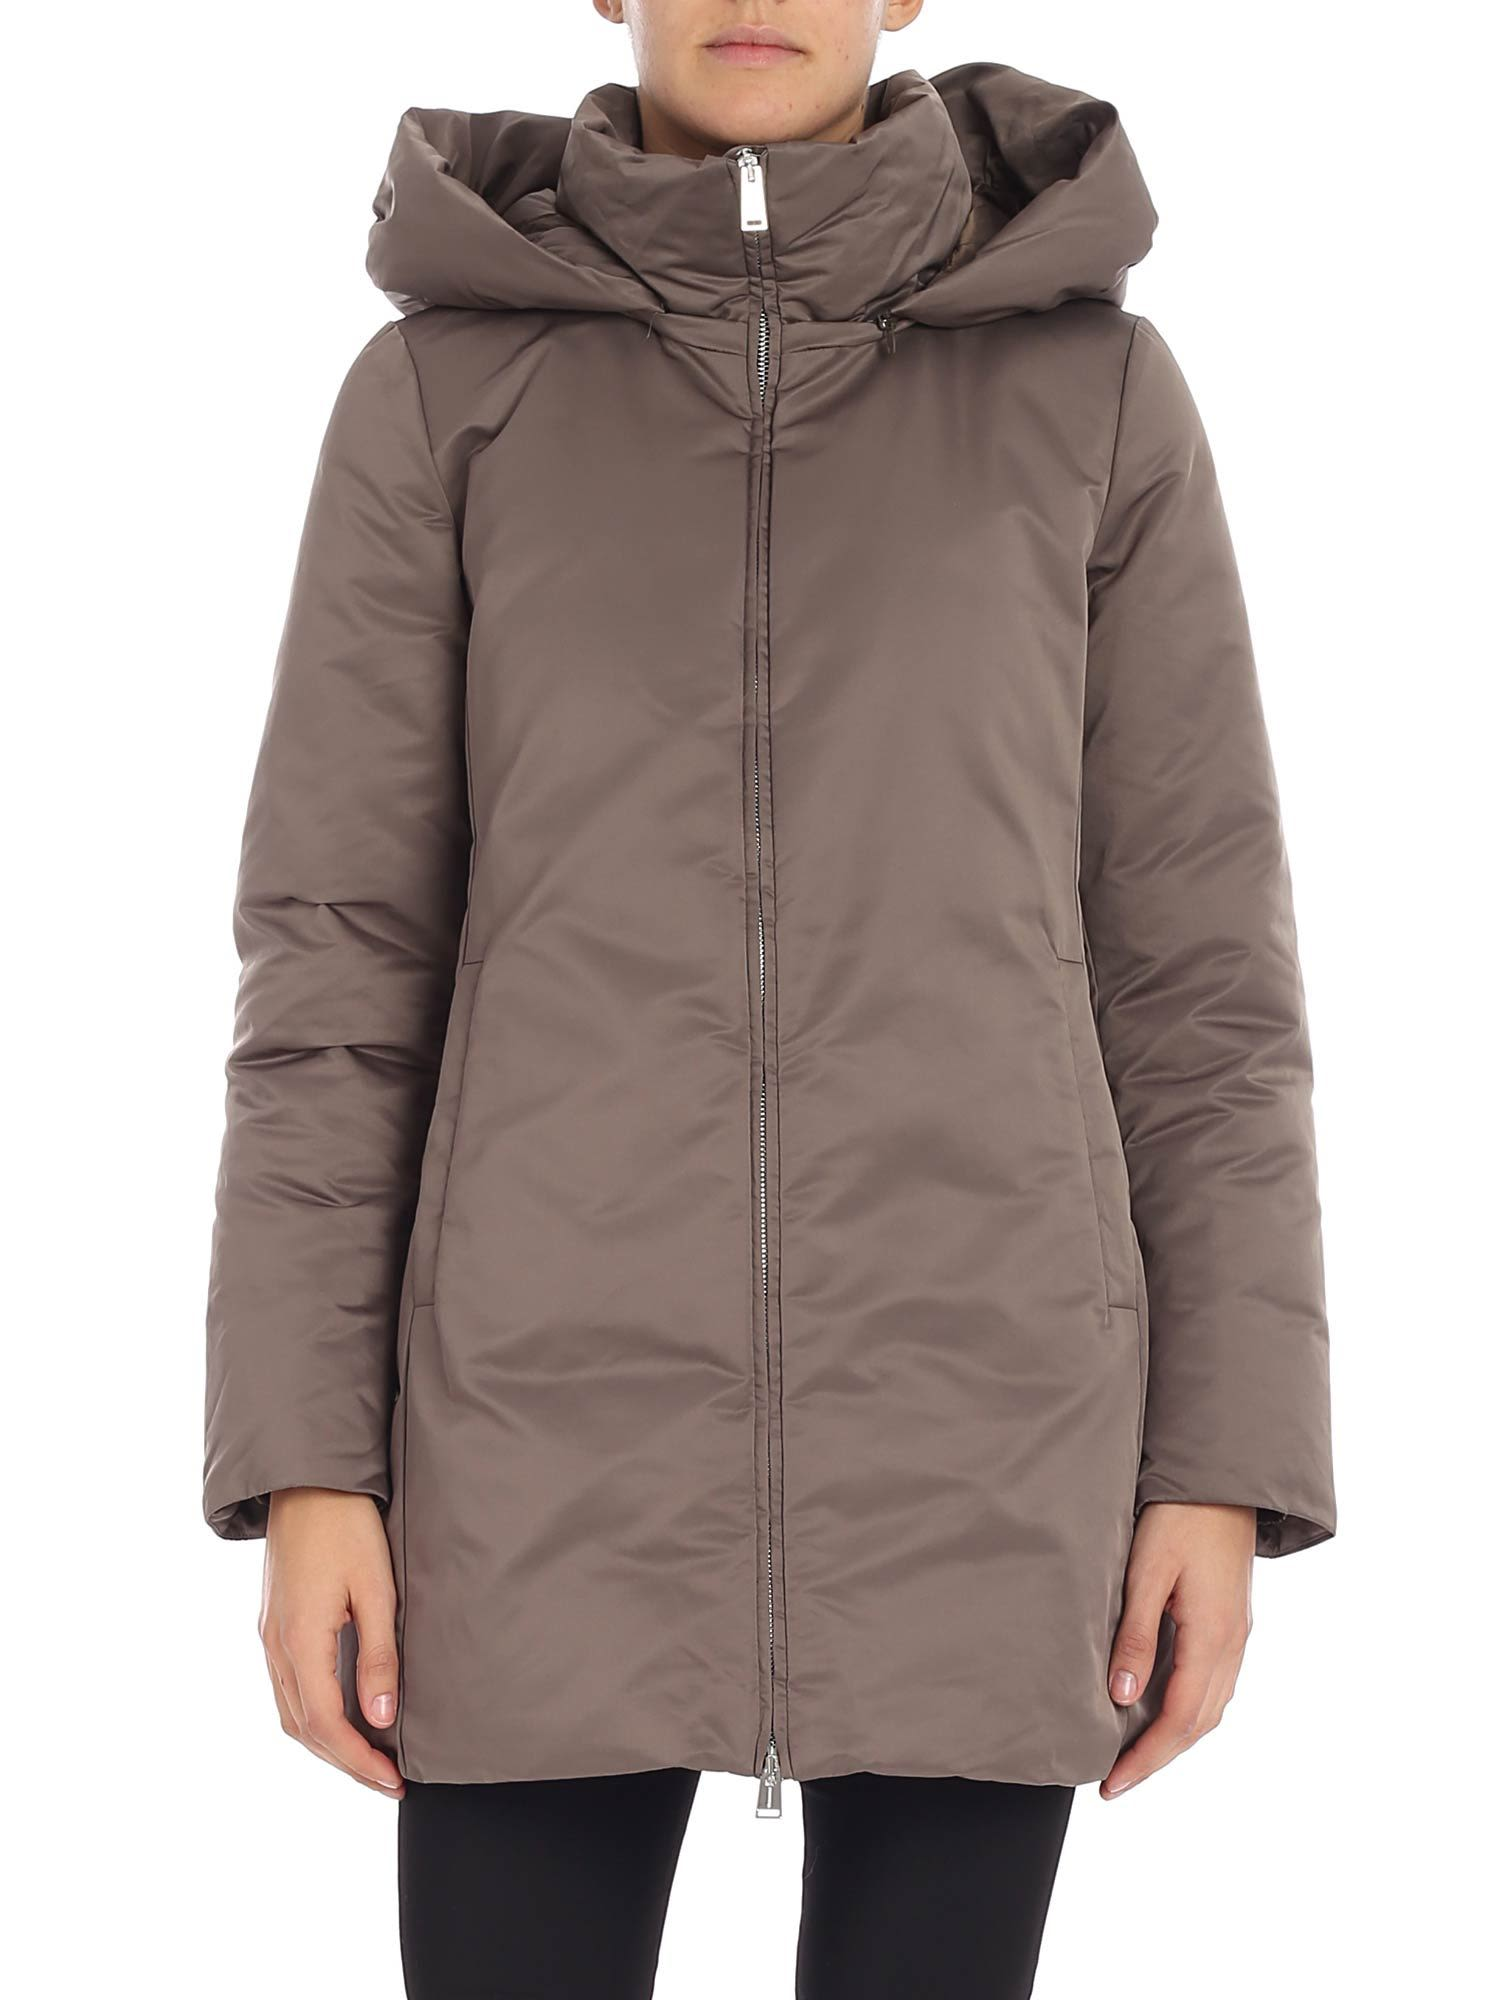 ADD Add Detachable Hood Jacket in Turtledove